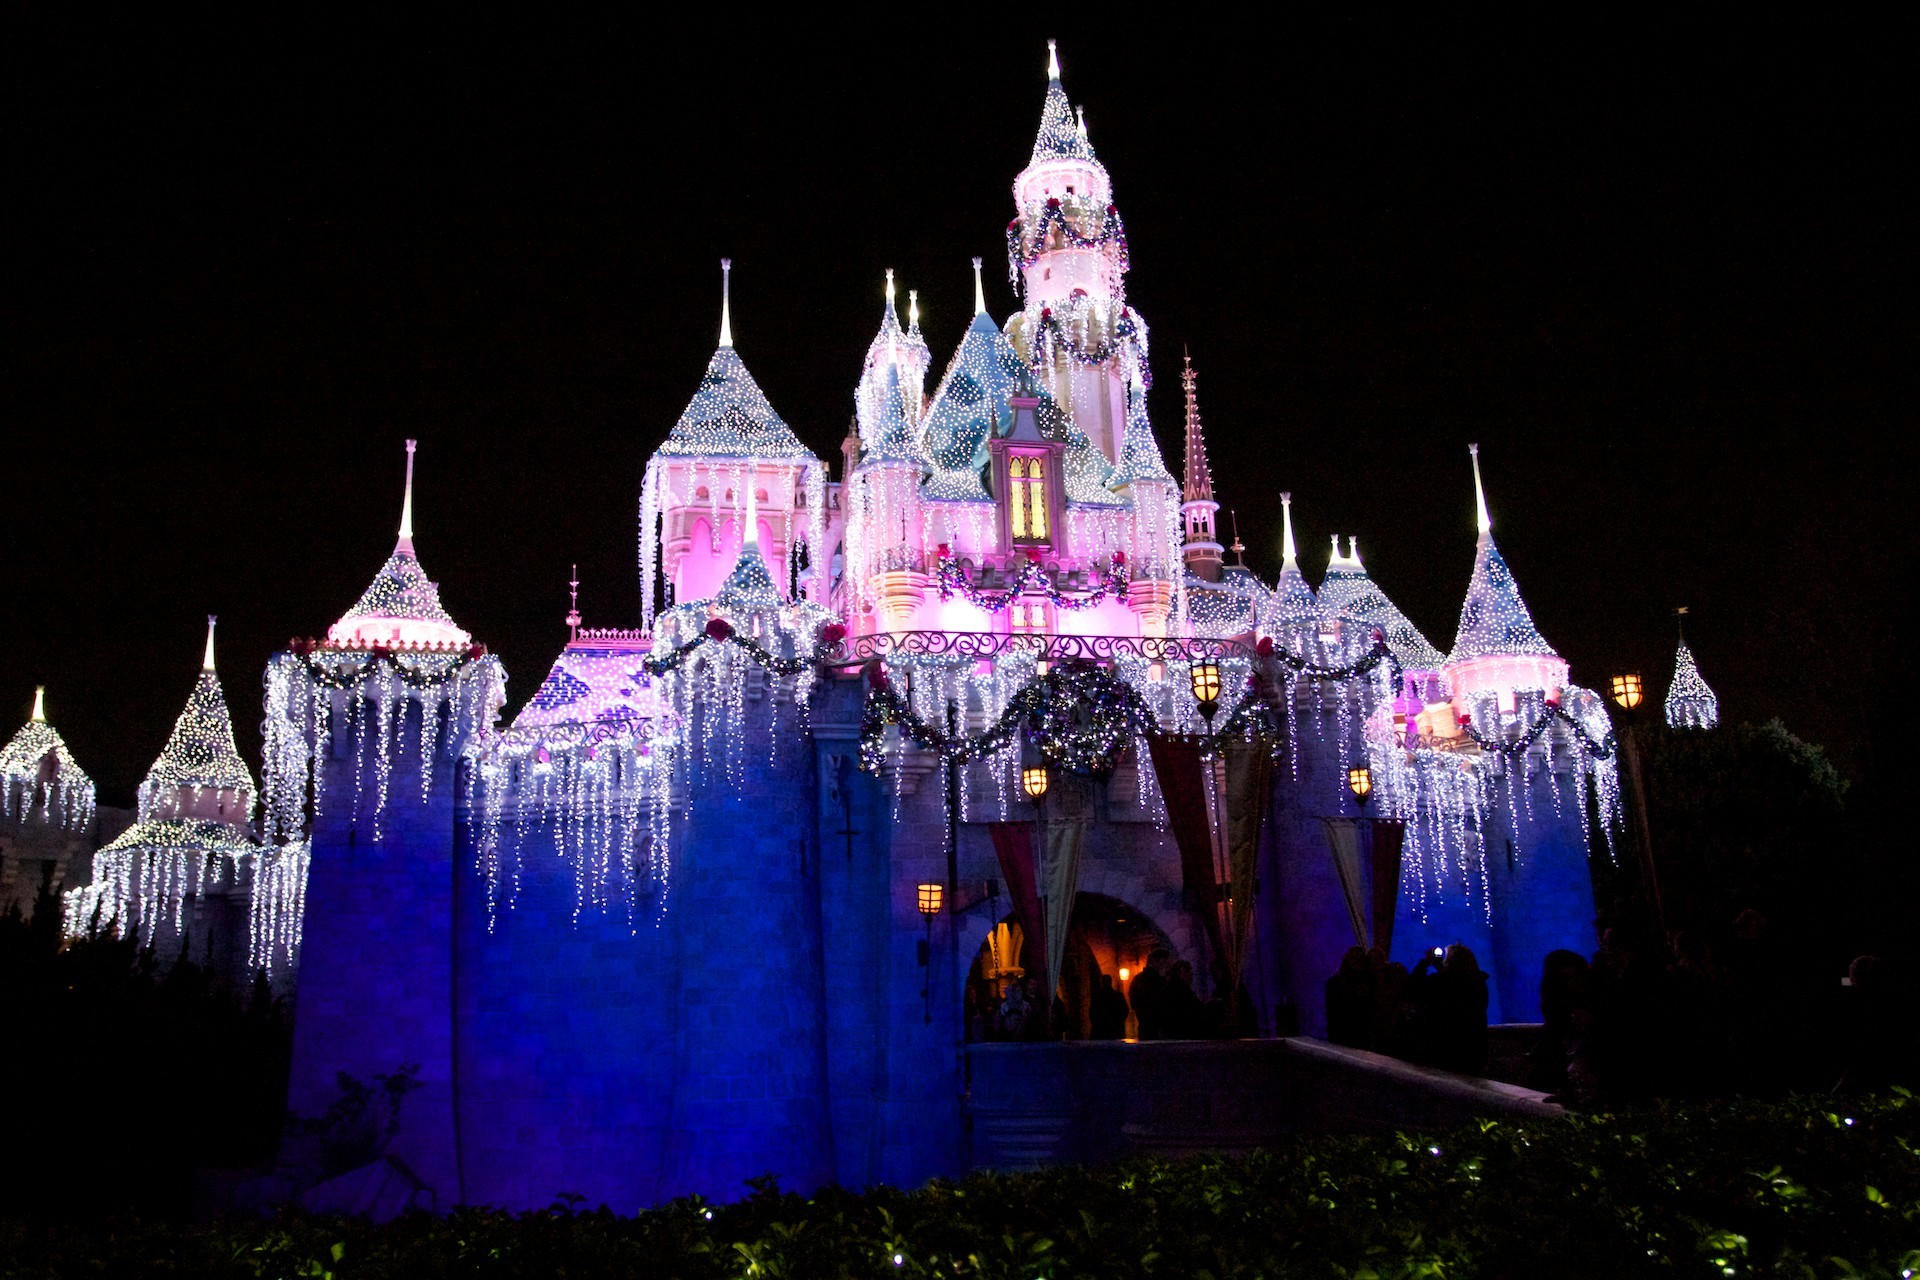 1920x1280 Disney Castle Christmas Wallpaper Images & Pictures - Becuo